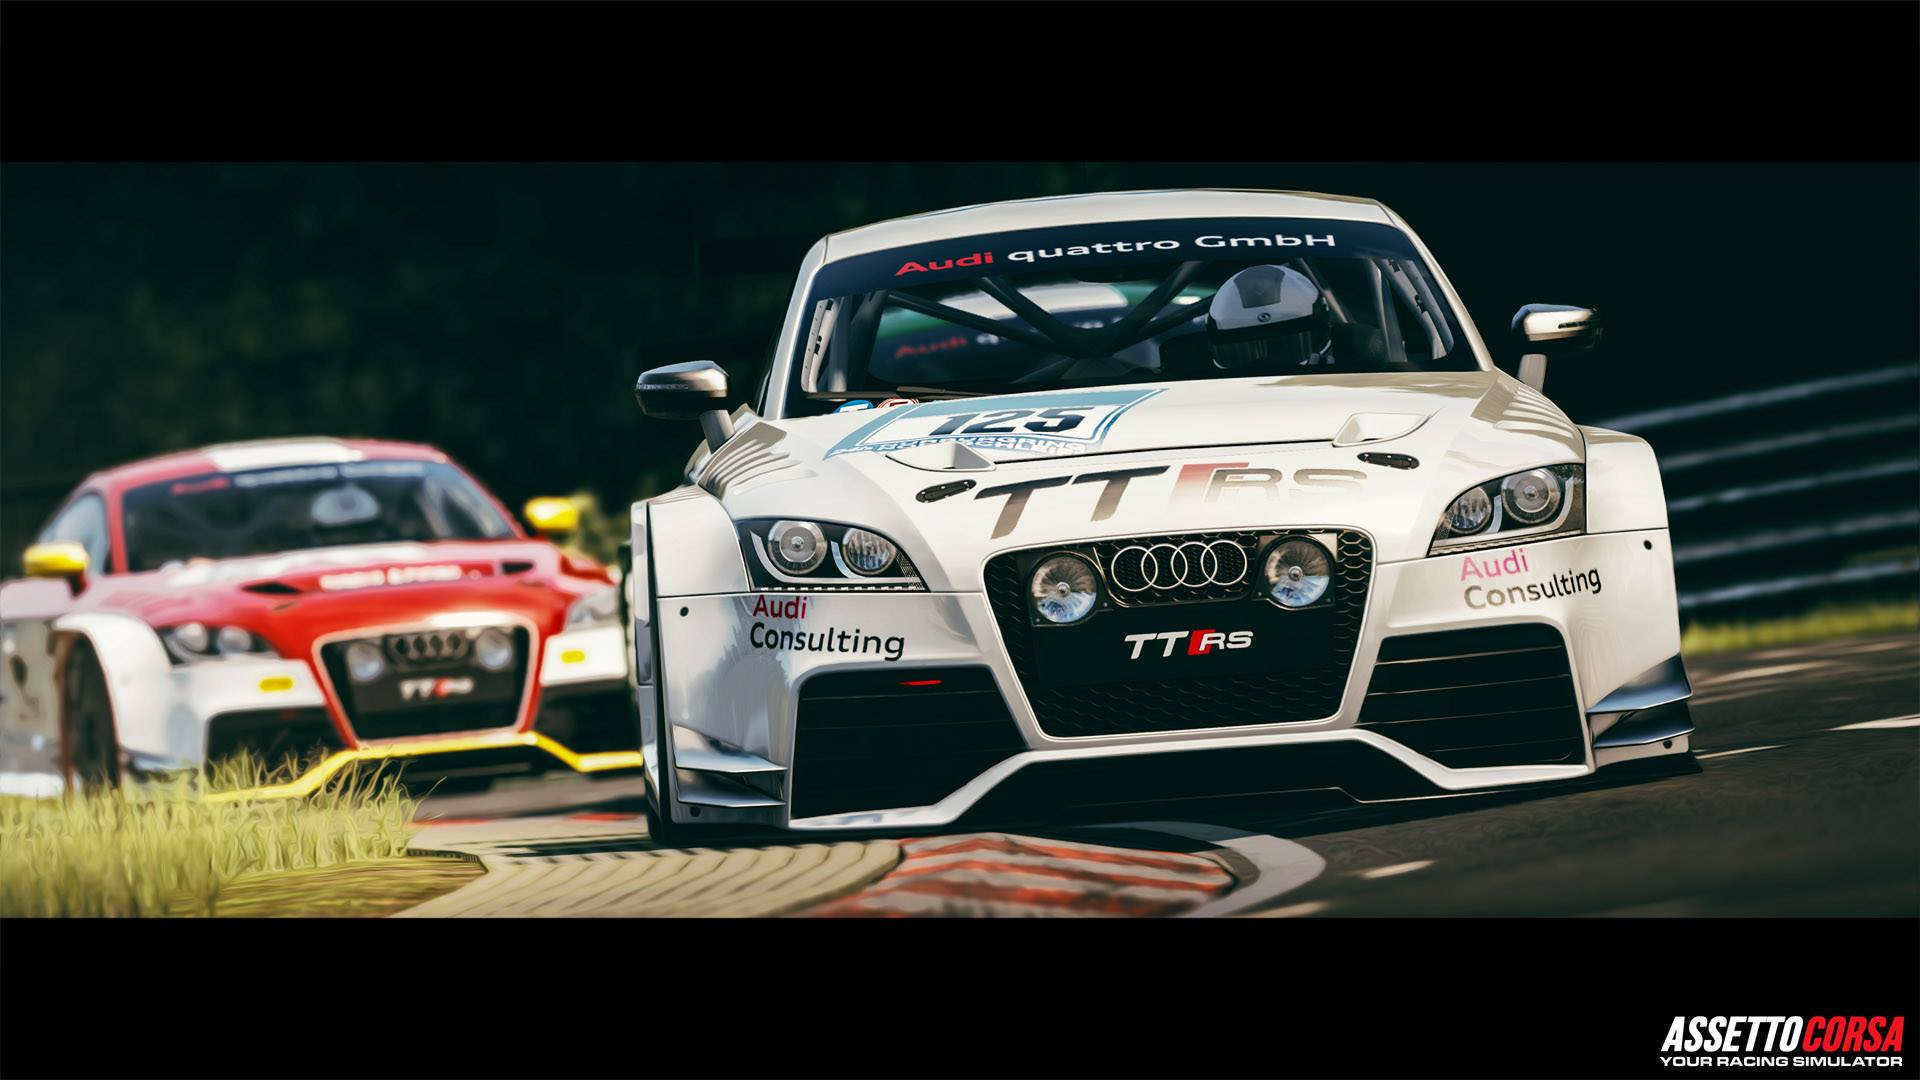 Gt Race Car Wallpaper Assetto Corsa Quot Ready To Race Quot Carpack Update Auf